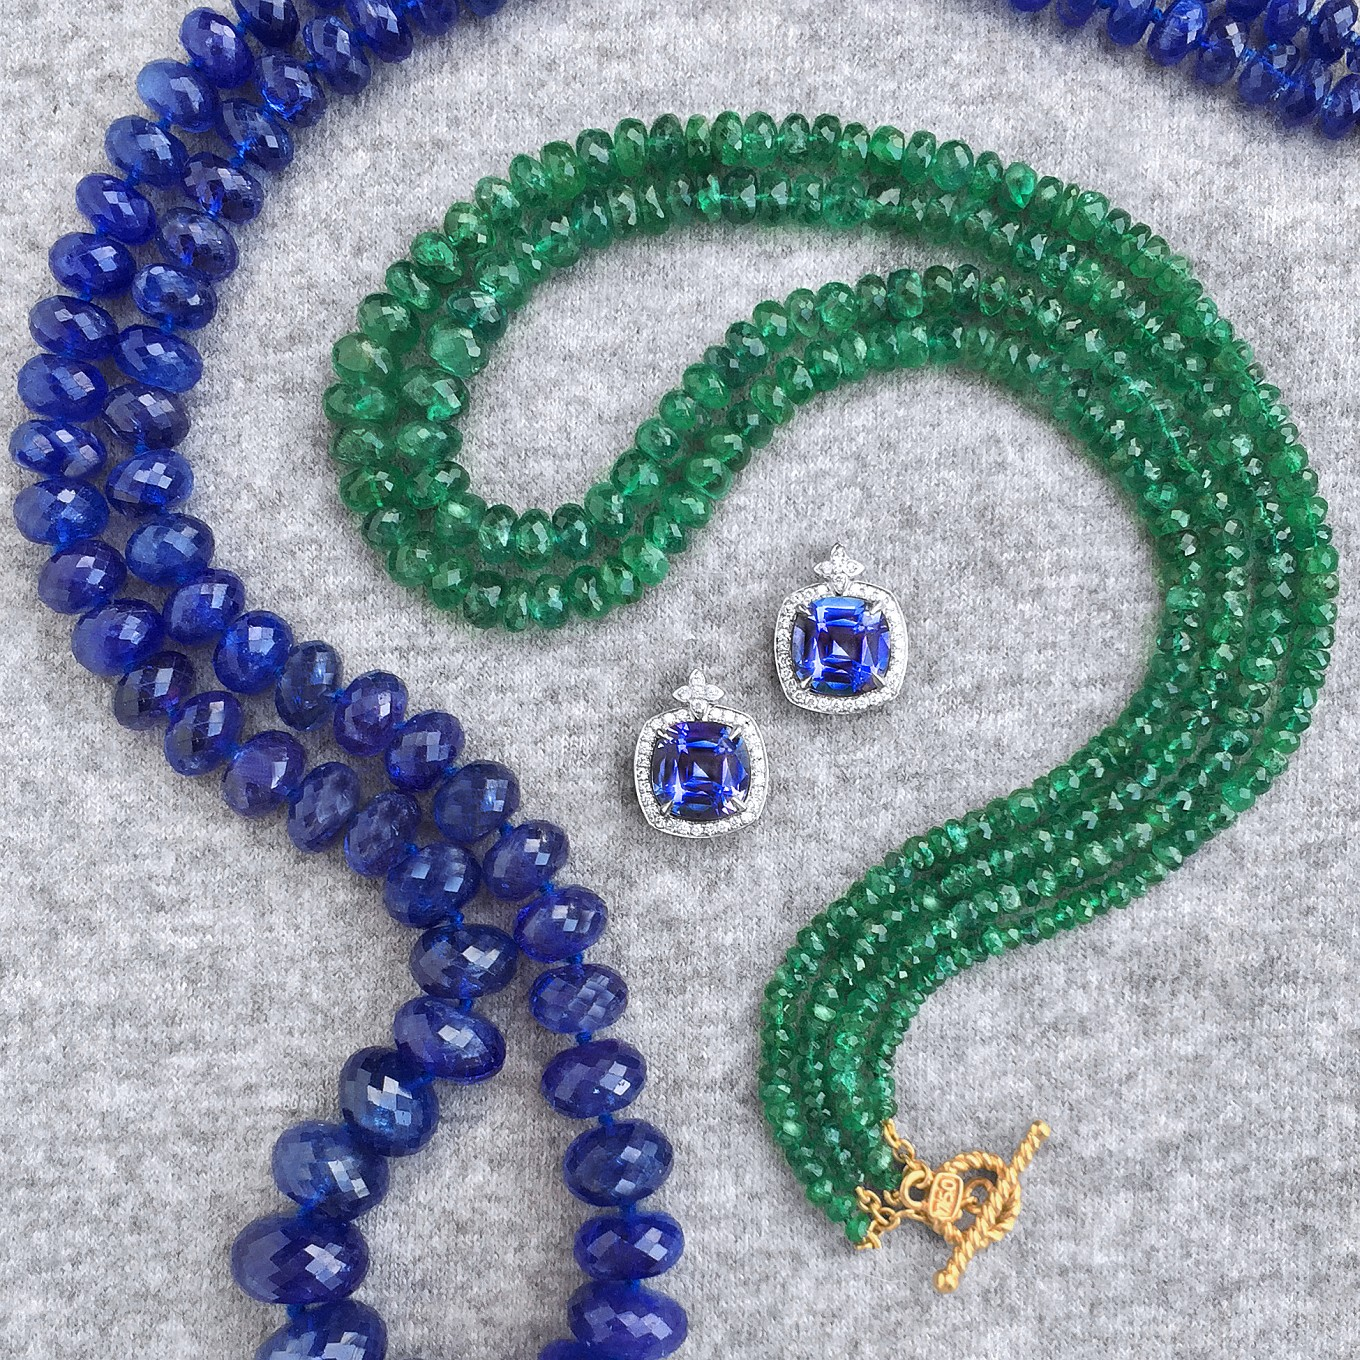 TANZANITE & EMERALD BEAD NECKLACES PRICE ON REQUEST<br/>CUSHION SHAPED TANZANITE & DIAMOND EARRINGS IN WHITE GOLD